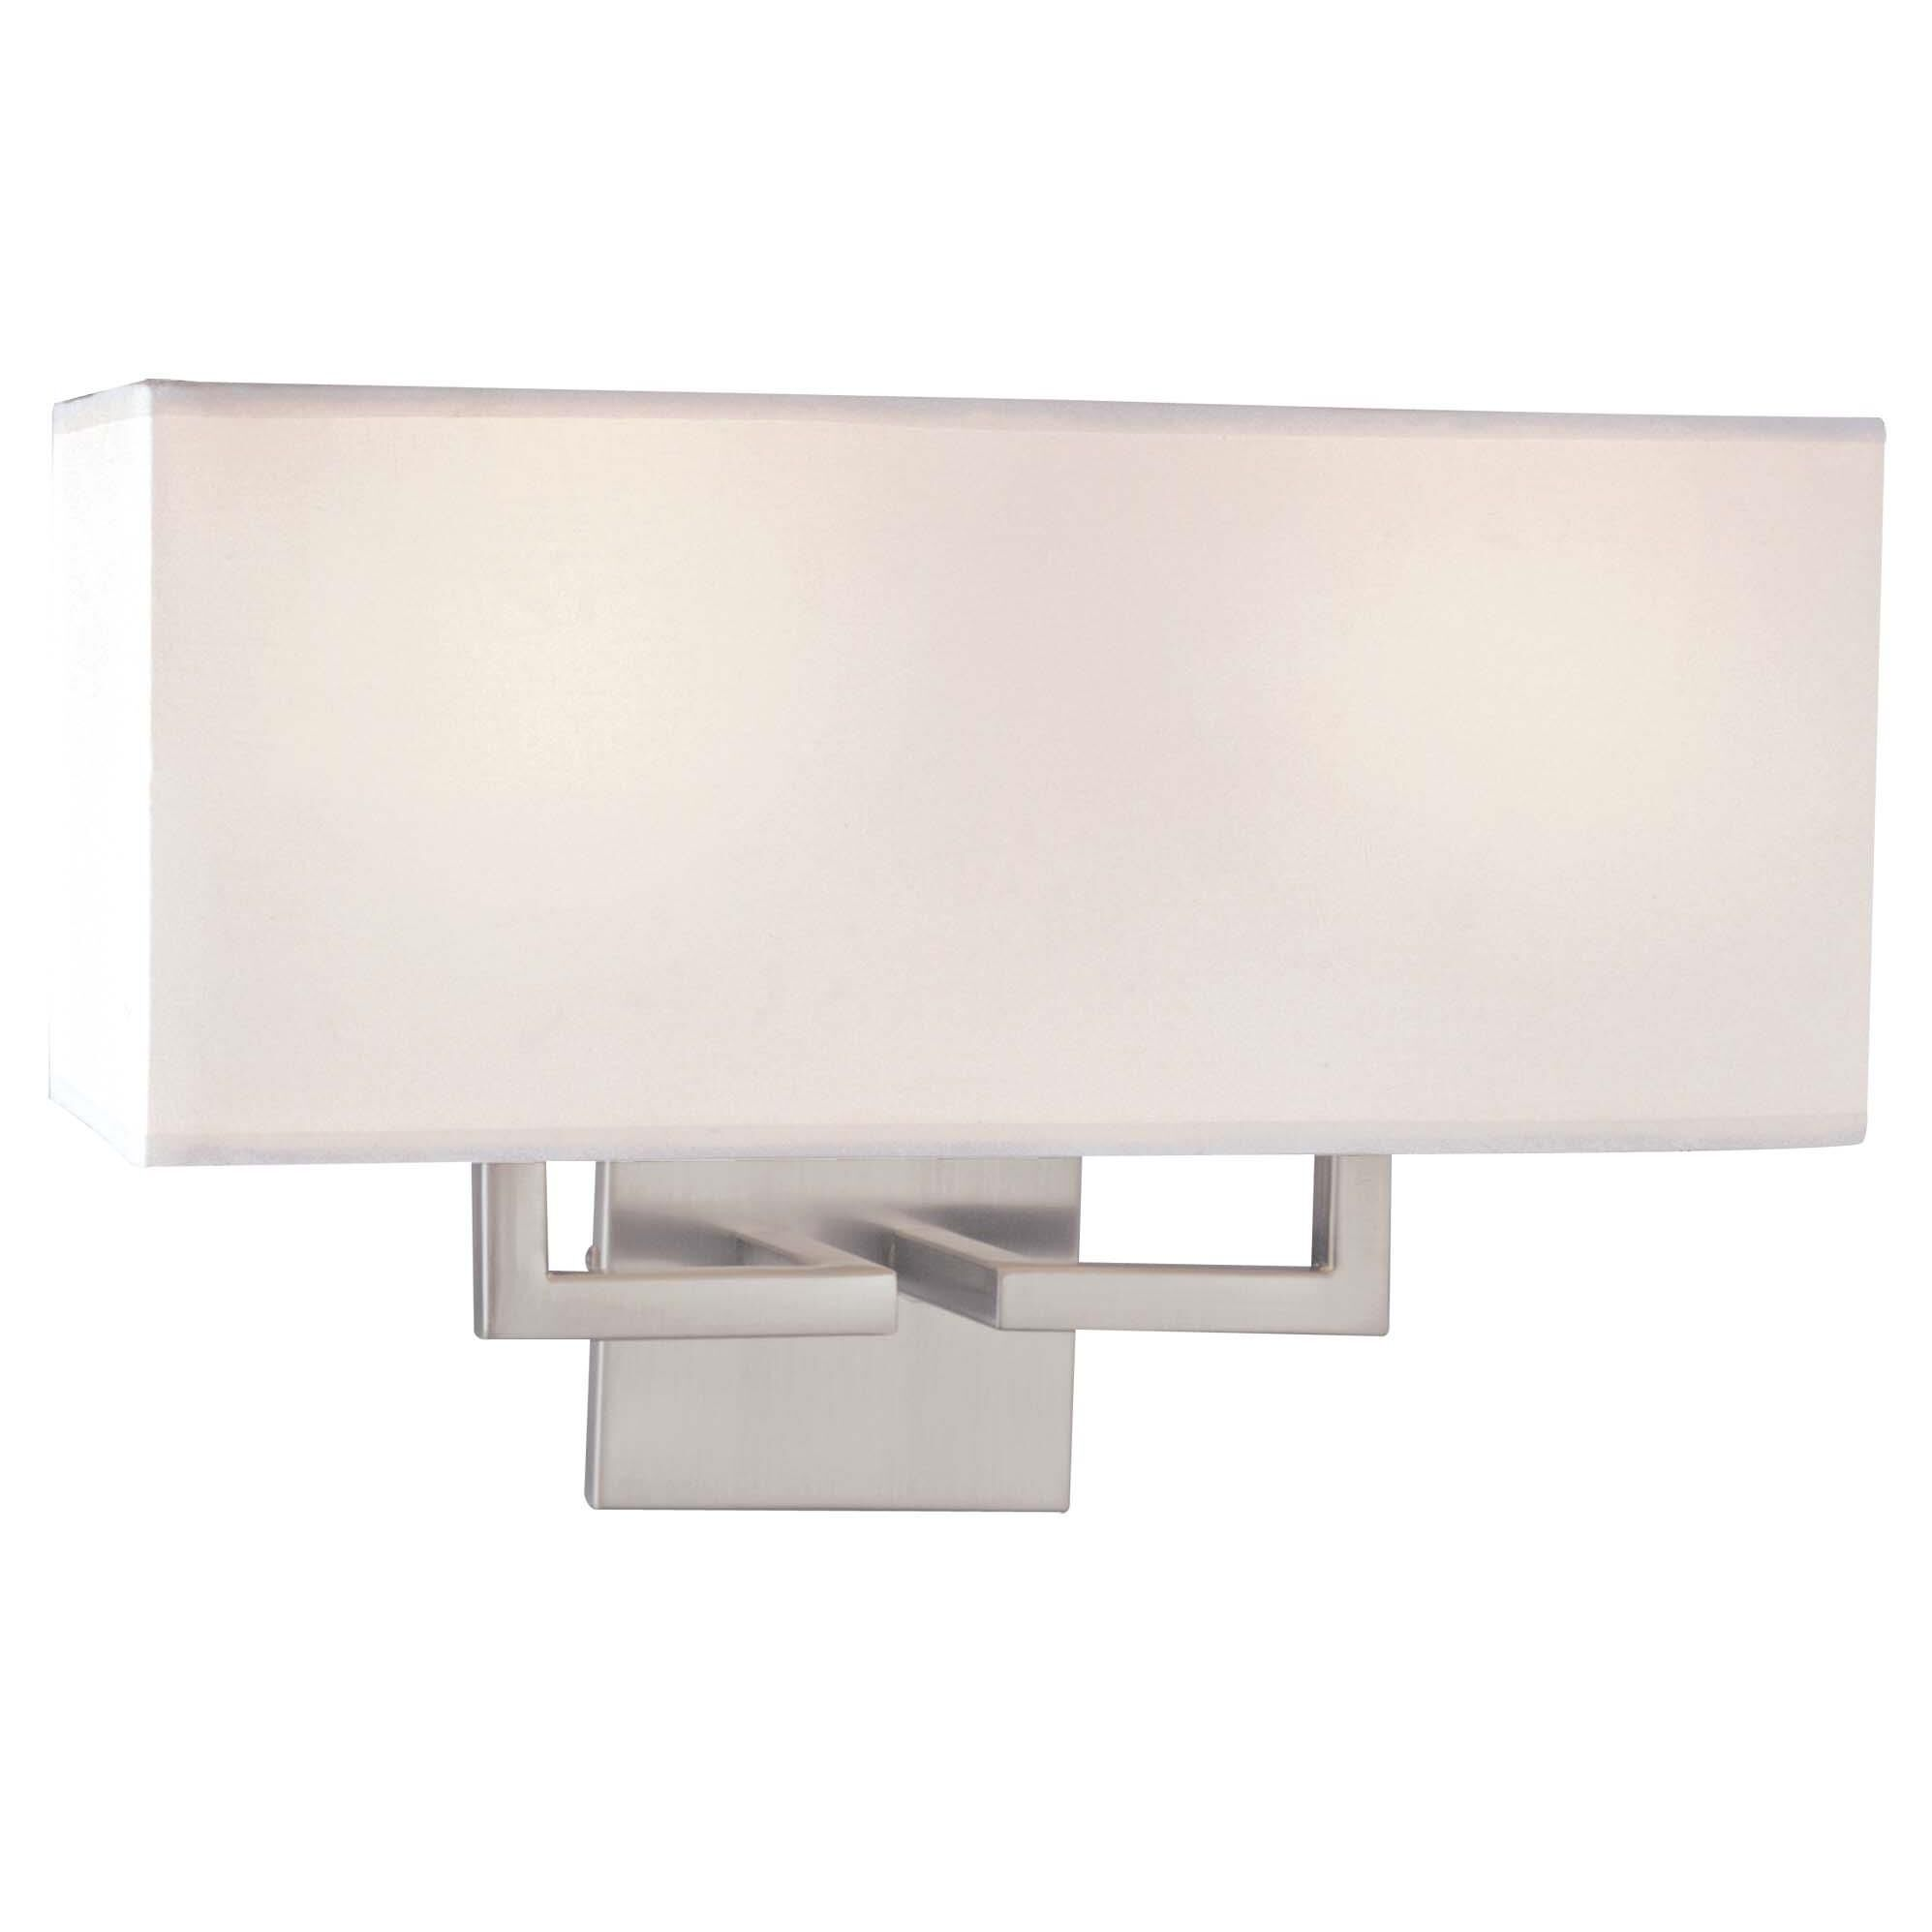 Kovacs 16 Inch Wall Sconce - P472-084 - Transitional